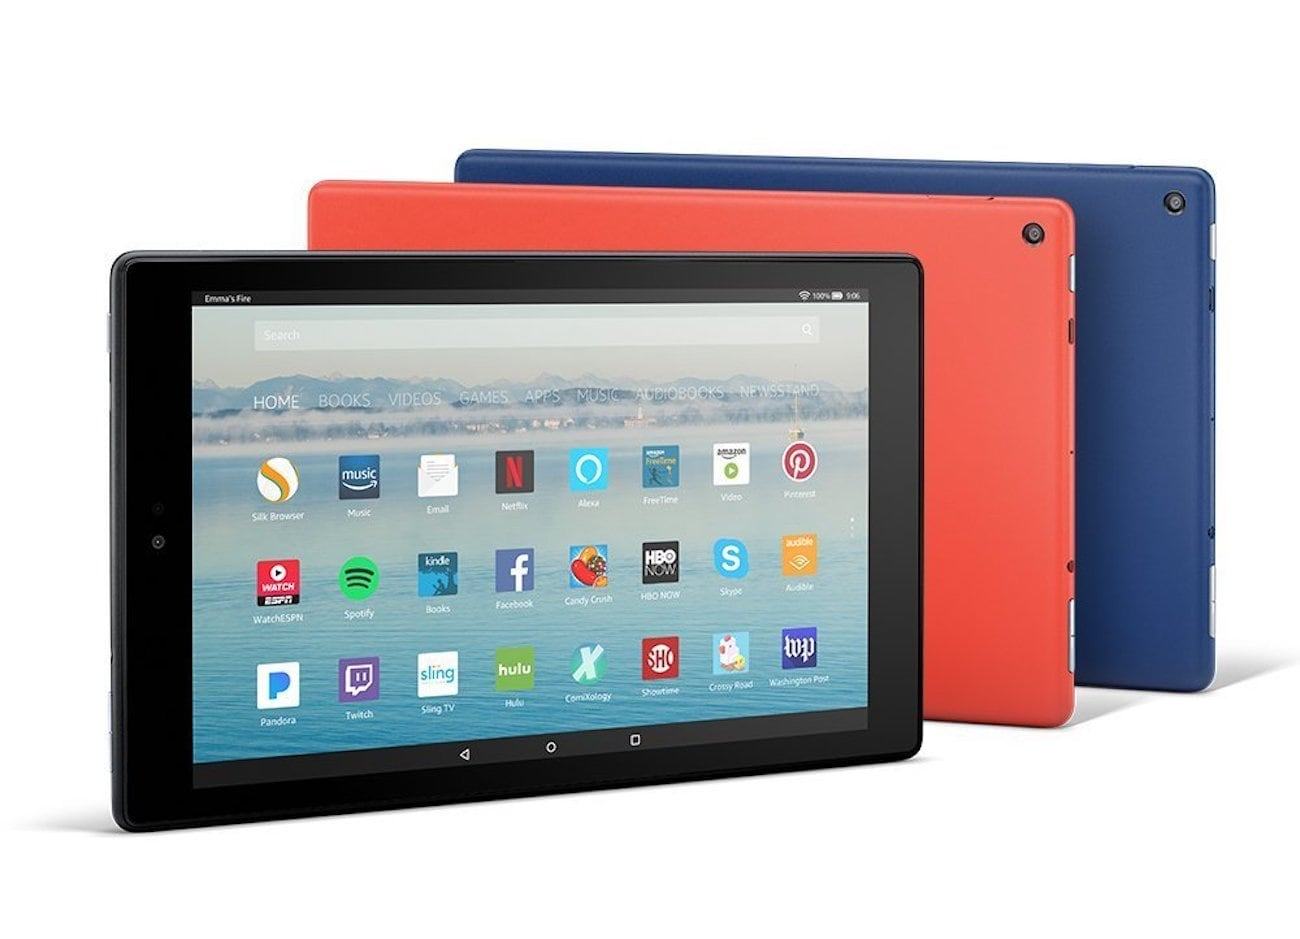 Amazon Fire HD 10 1080p Tablet